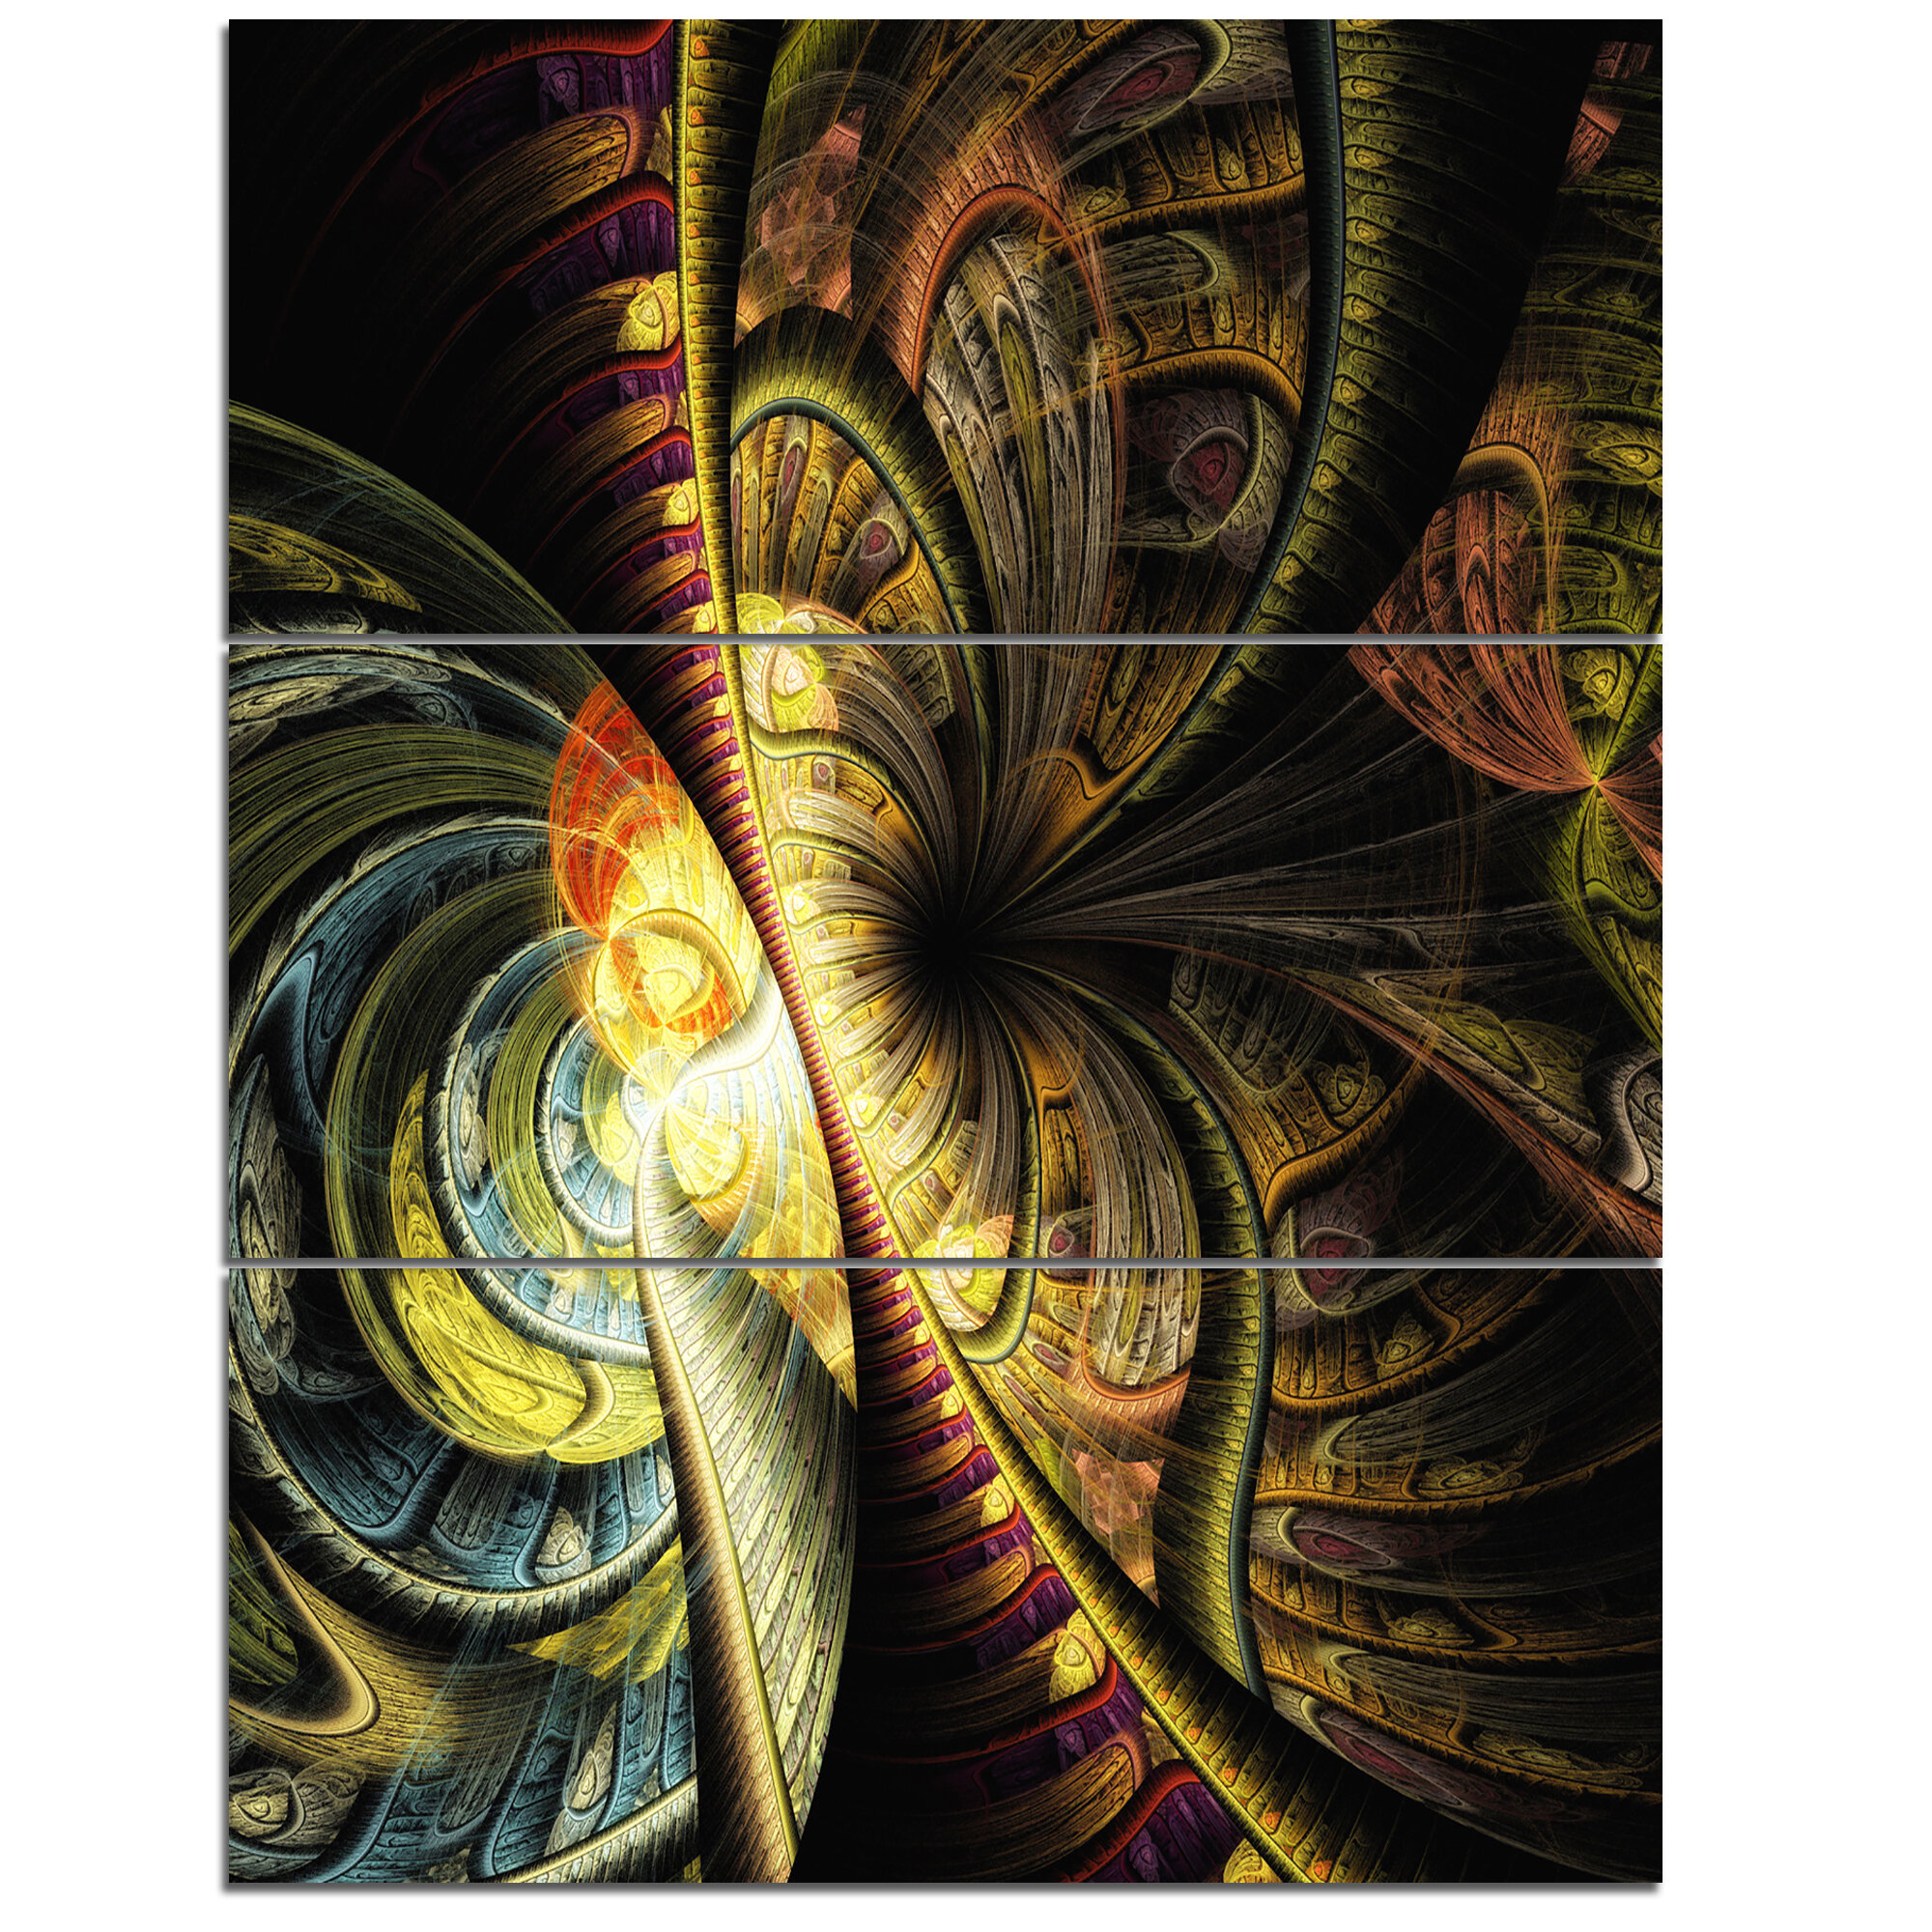 Designart Fractal Illustration 3 Piece Graphic Art On Wrapped Canvas Set Wayfair